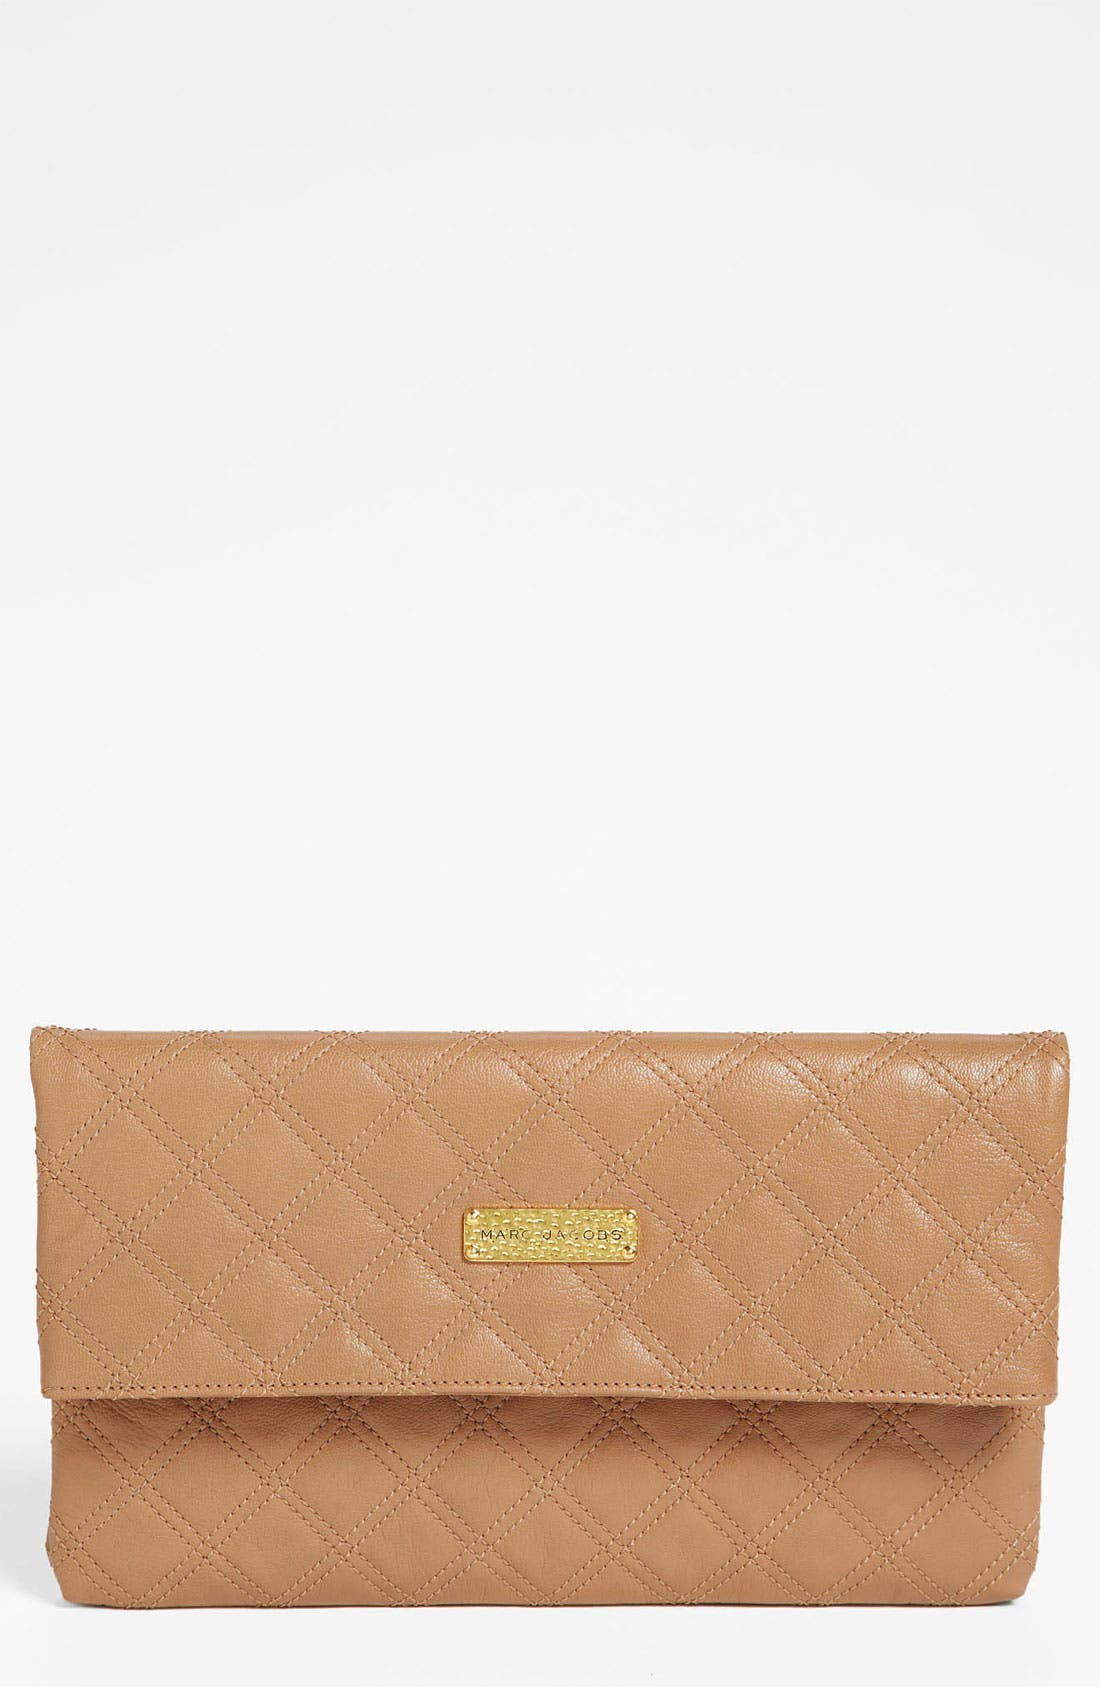 Main Image - MARC JACOBS 'Large Baroque Eugenie' Leather Clutch